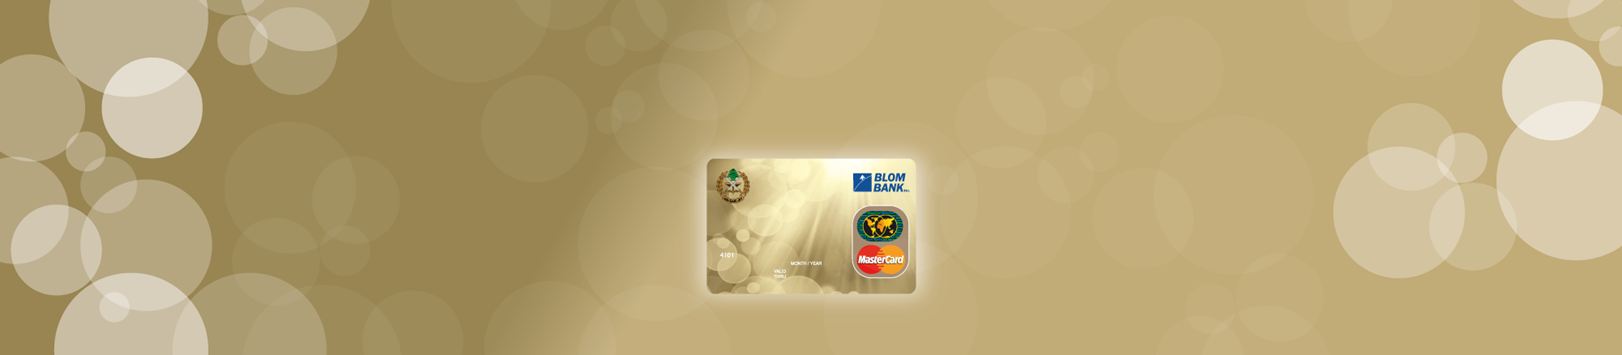 BLOM Giving Gold Card